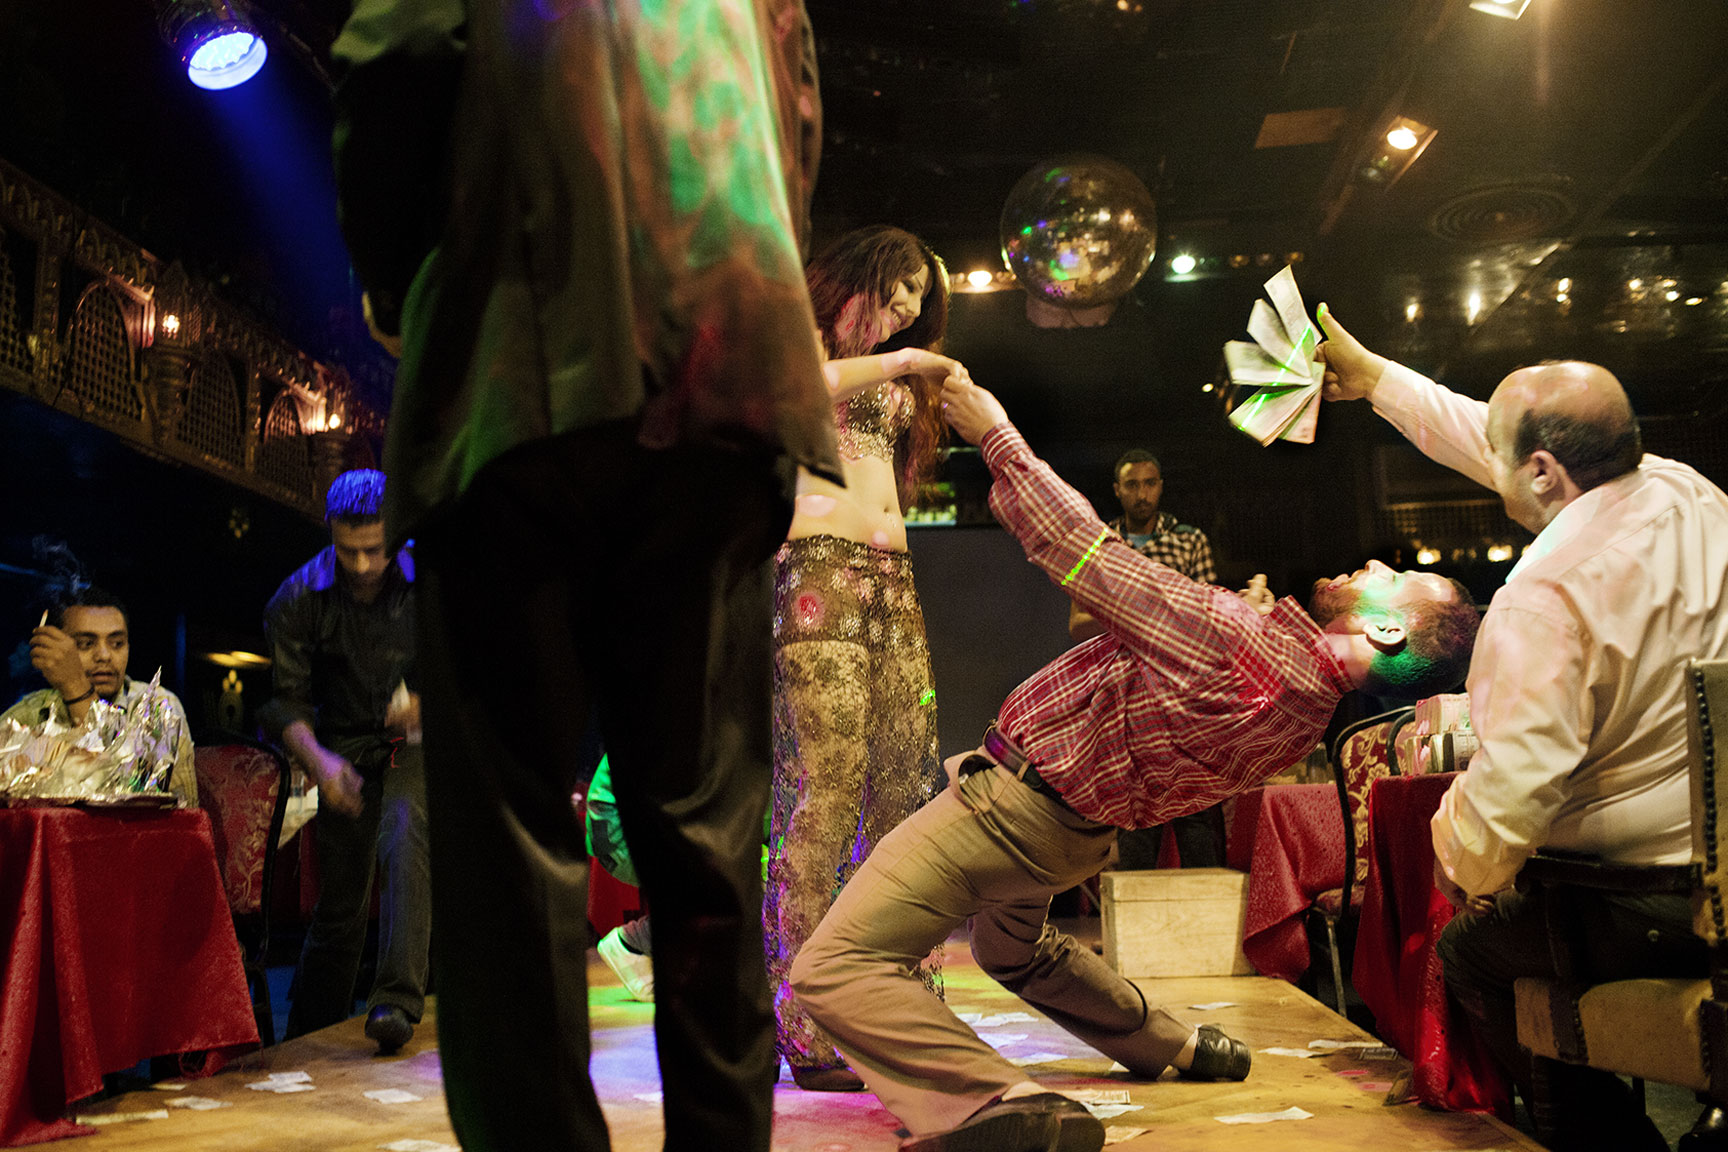 EGYPT_BELLY-DANCERS_20120429_291-copy.jpg